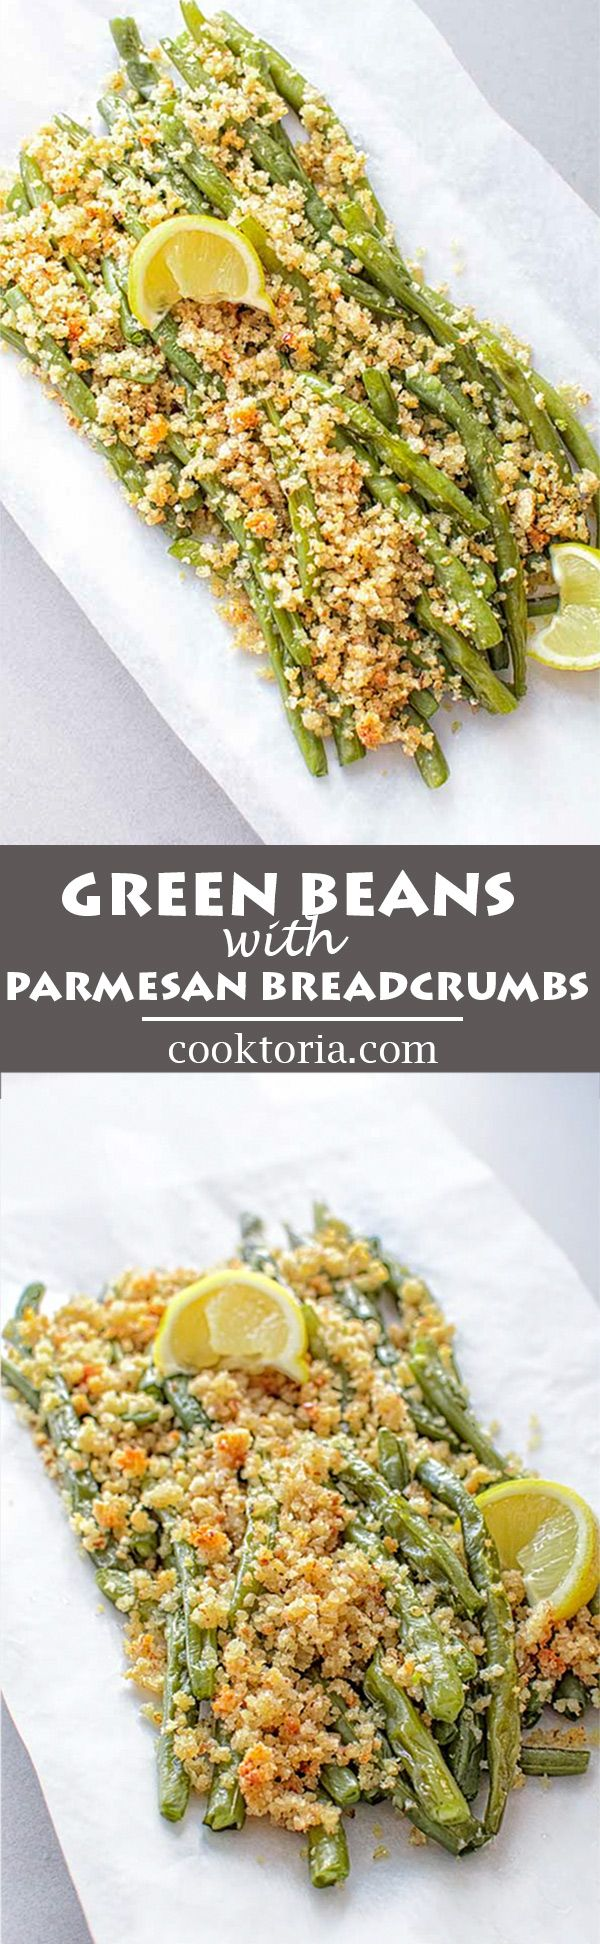 Succulent green beans with crunchy and flavorful Parmesan breadcrumbs. ❤ COOKTORIA.COM